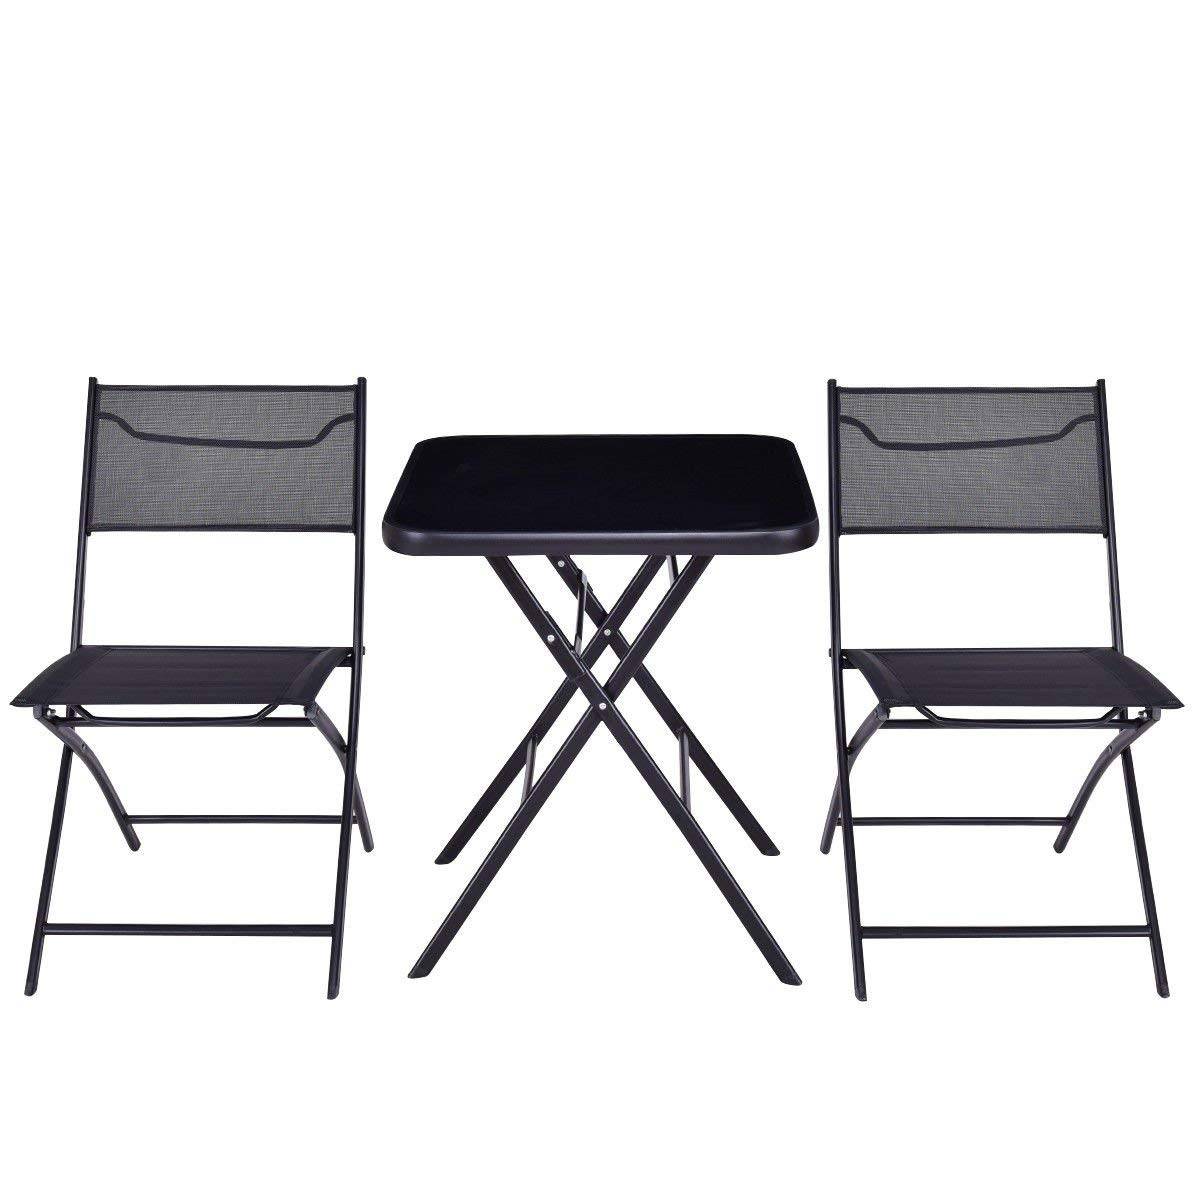 KCHEX>Outdoor Patio 3PC Folding Square Table and Chair Suit Set Garden Bistro Backyard>This Our 3PCS Folding Table and Chairs Suit.